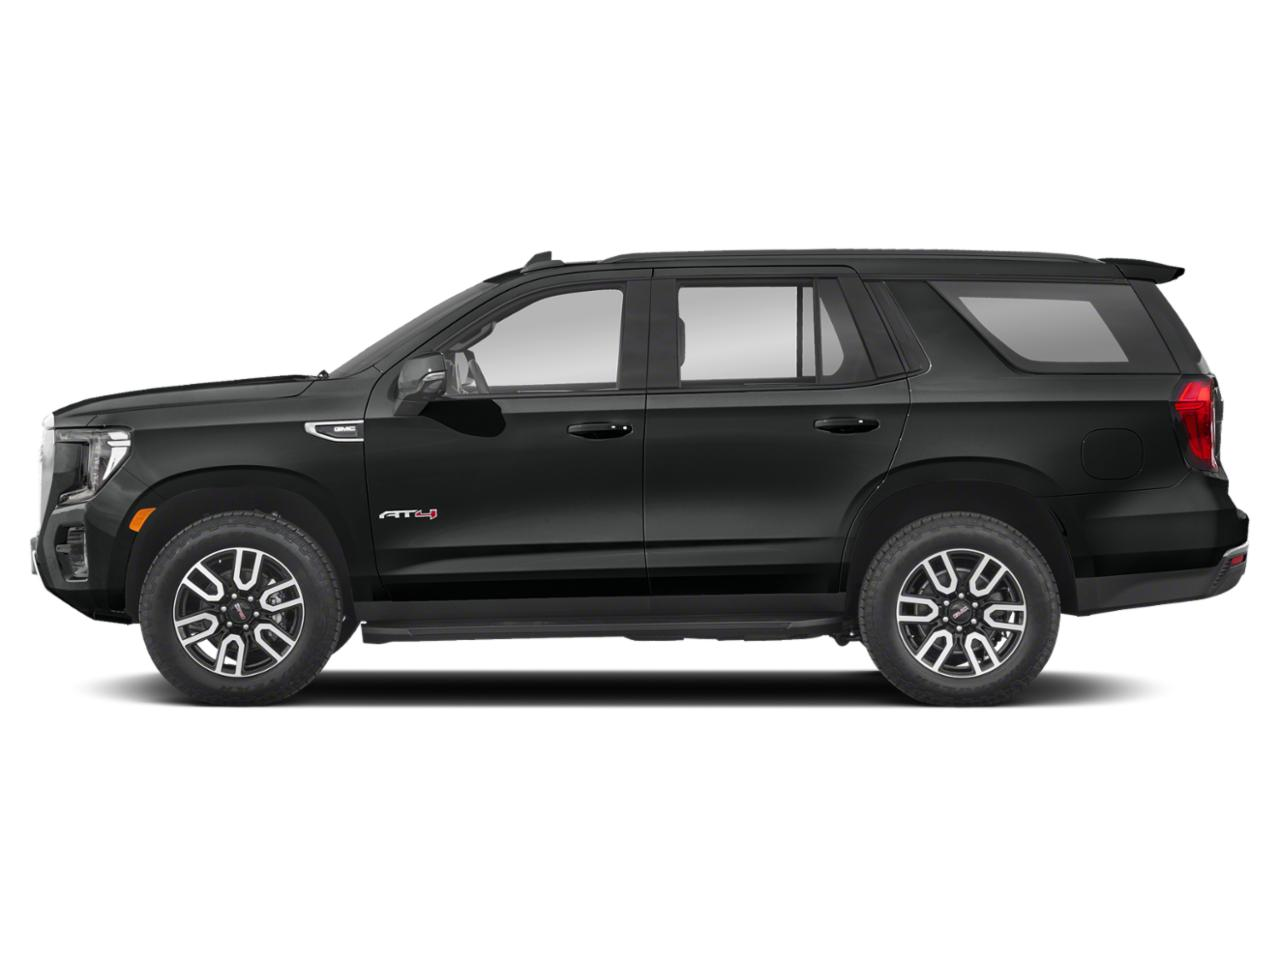 new 2021 gmc yukon 4wd 4dr denali in dark sky metallic for